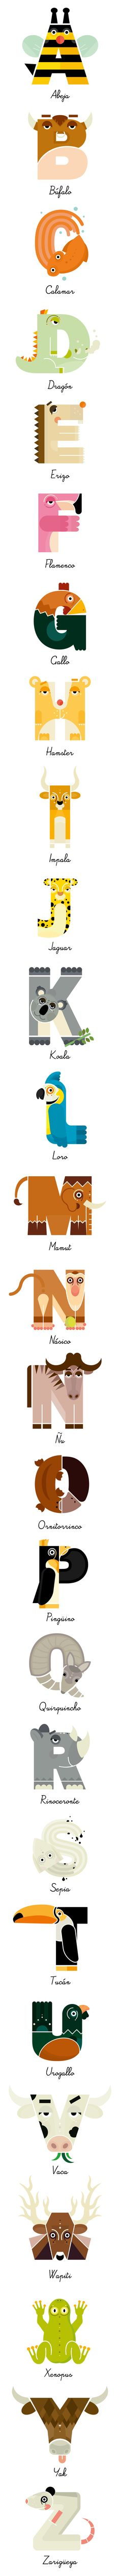 Animalario by anna tilche, via Behance